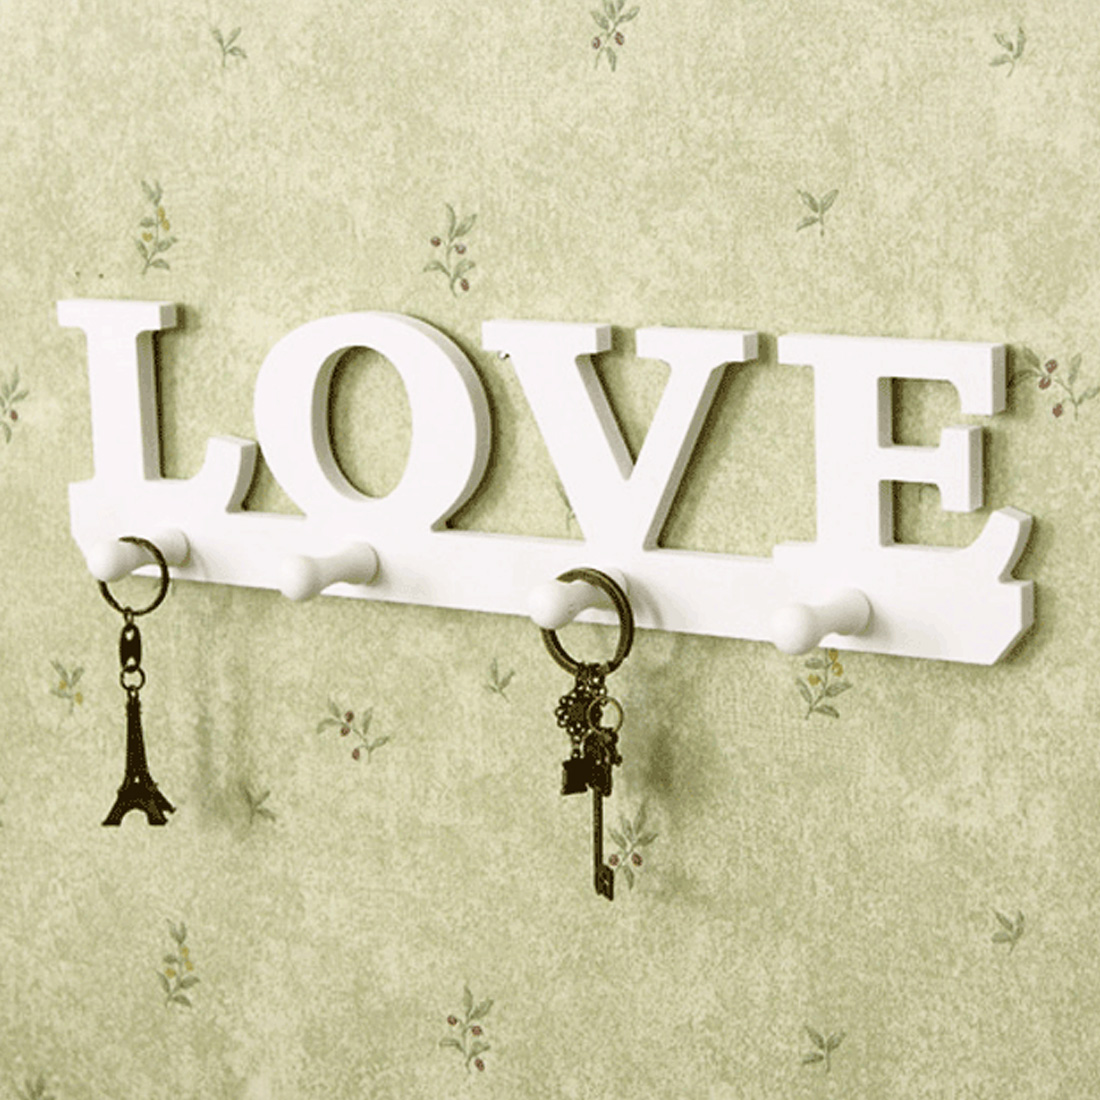 Home Decor Hanger Keychain Wall Hook White Love Clothes Hat Keychain Clothes Bag Robe Hanging Screws Ledges Door Bathroom Retro